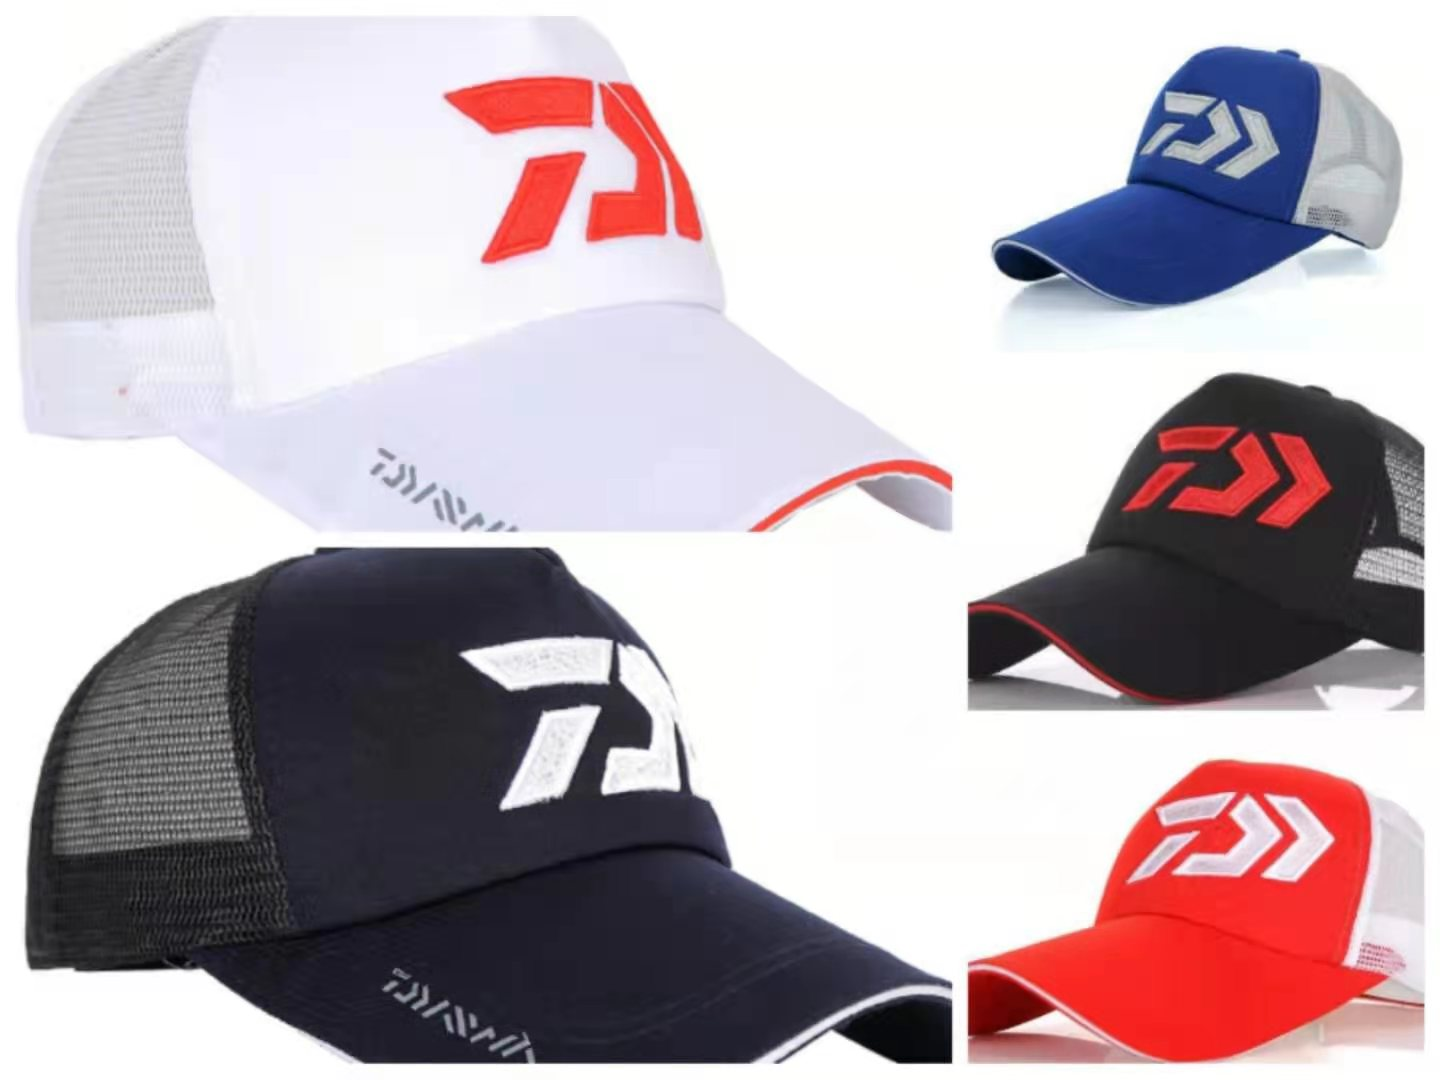 Wholesale Daiwa Sunshade Fishing Cap for Men Outdoor Sport Baseball Fishermen Hat Couple Fishing Hat